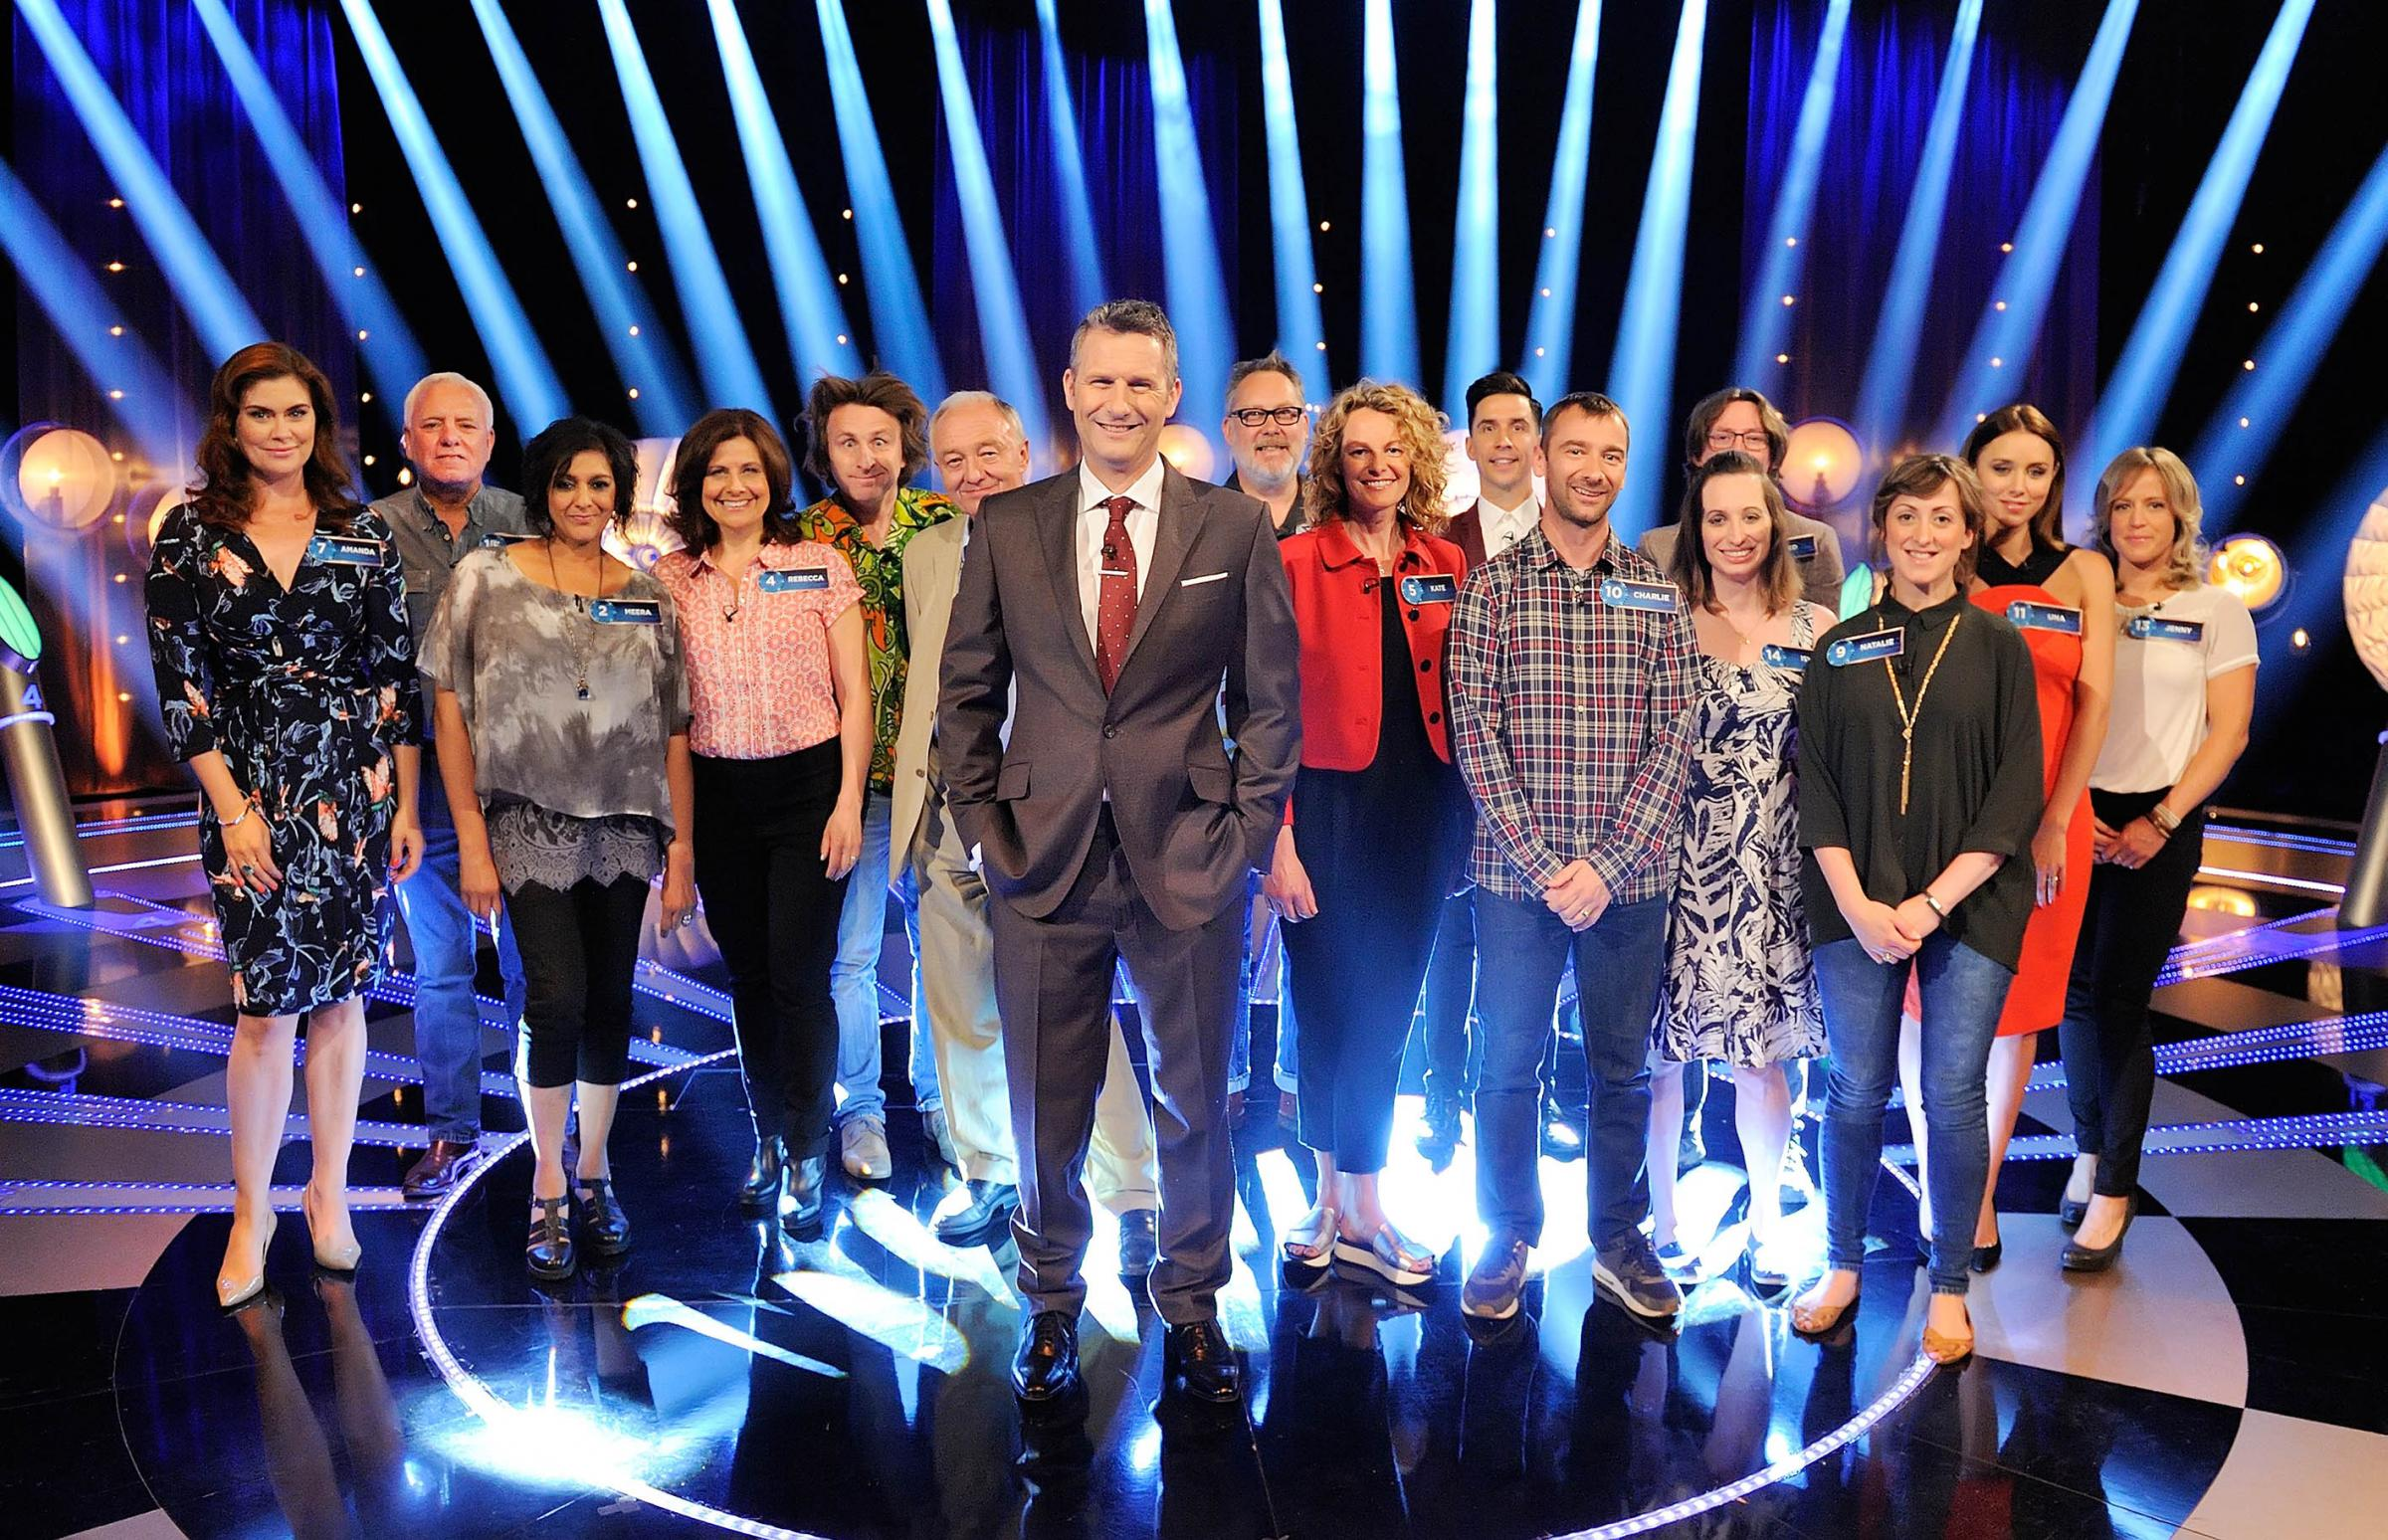 CONTESTANTS: From left to right, Amanda Lamb, Dave Spikey, Meera Syal, Rebecca Front, Milton Jones, Ken Livingstone, Adam Hills, Vic Reeves, Kate Humble, Russell Kane, Charlie Condou, Ed Byrne, Isy Suttie, Natalie Cassidy, Una Foden, Jenny Jones